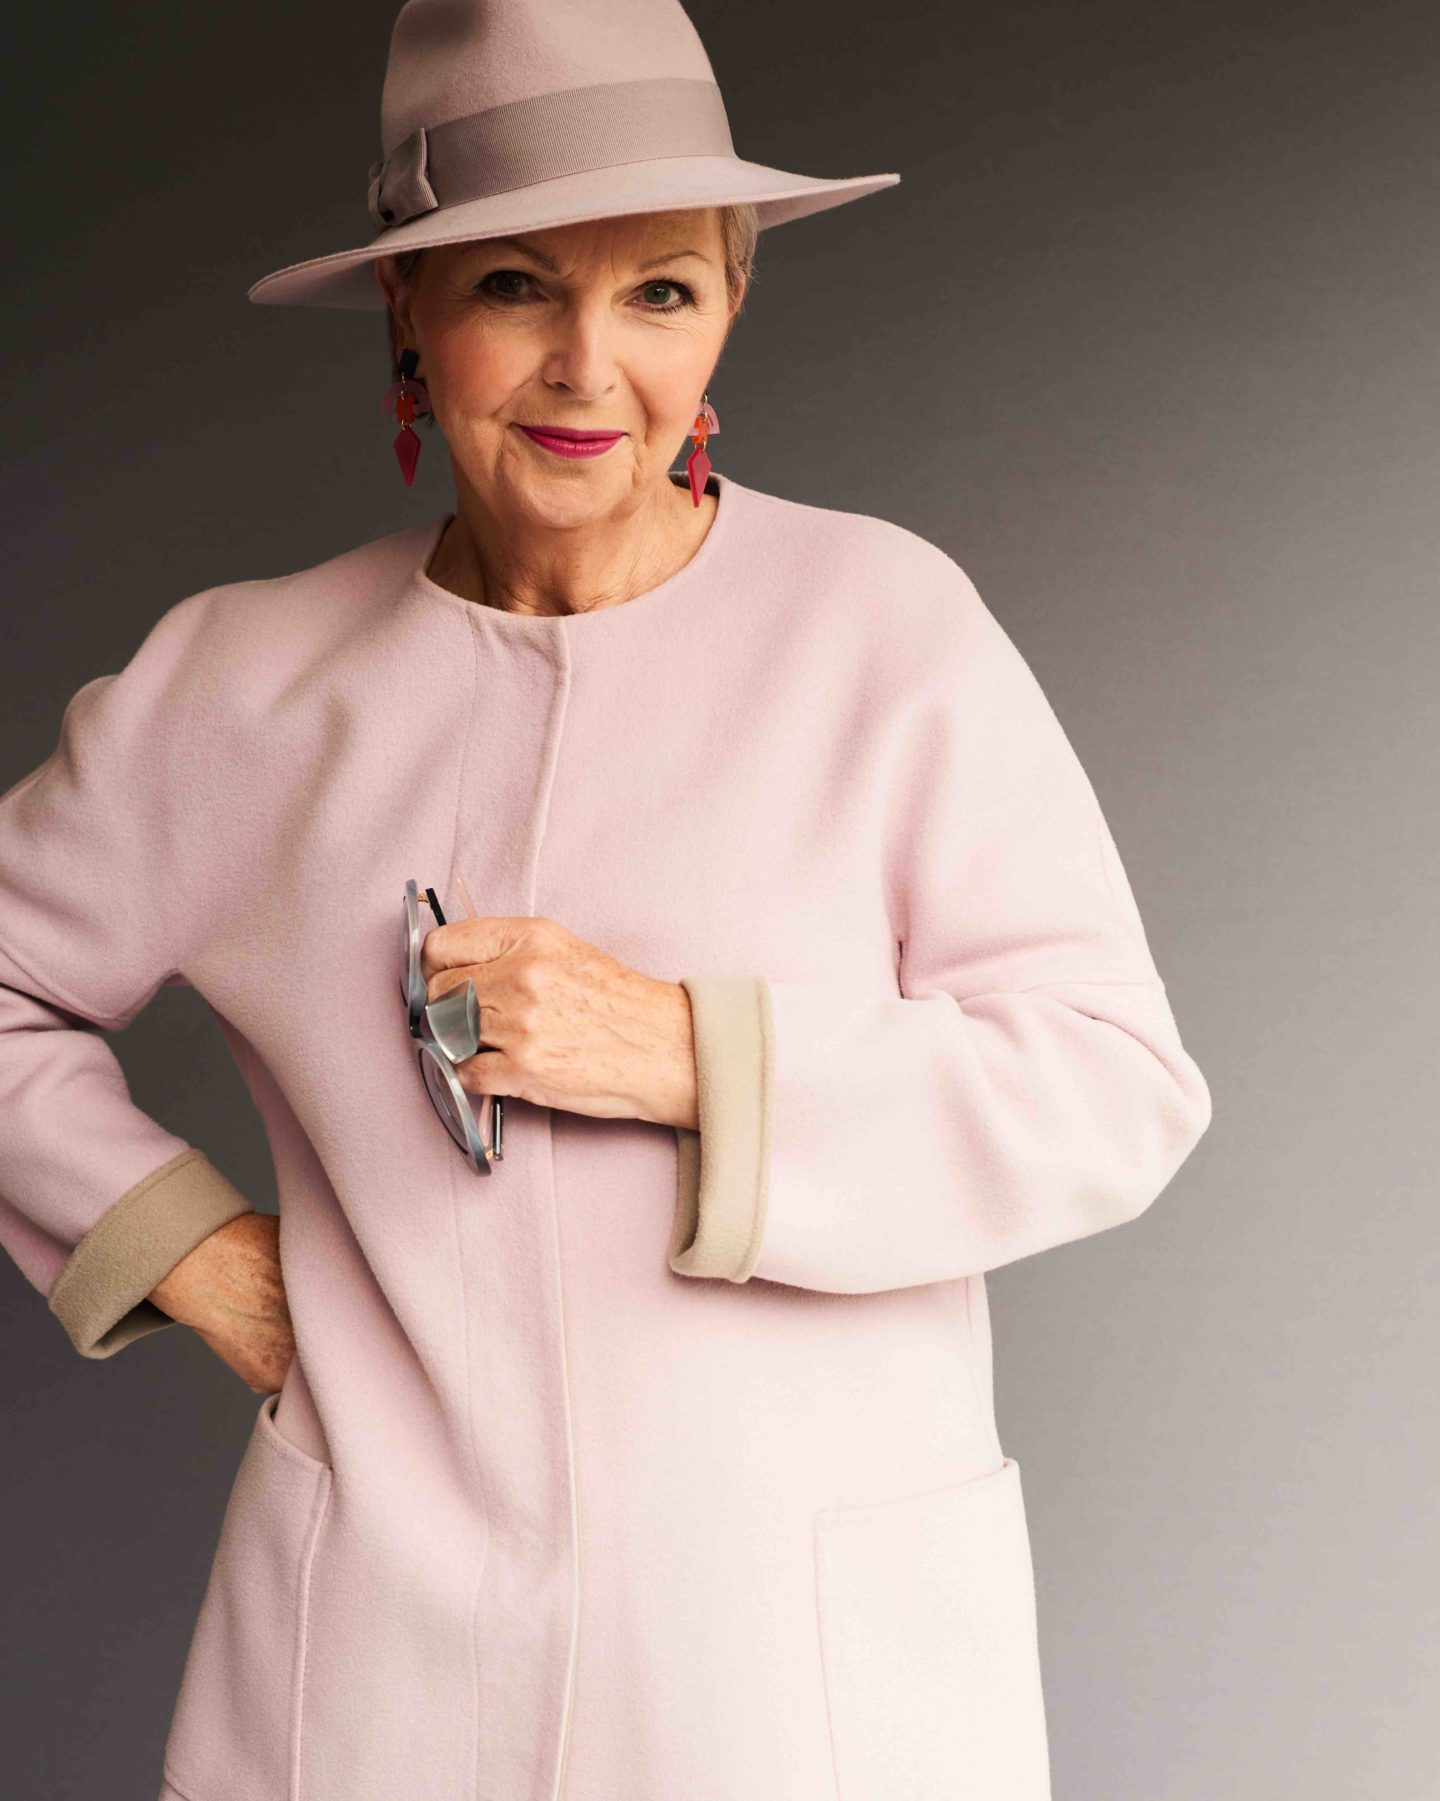 Beauty, style and empowerment for older women